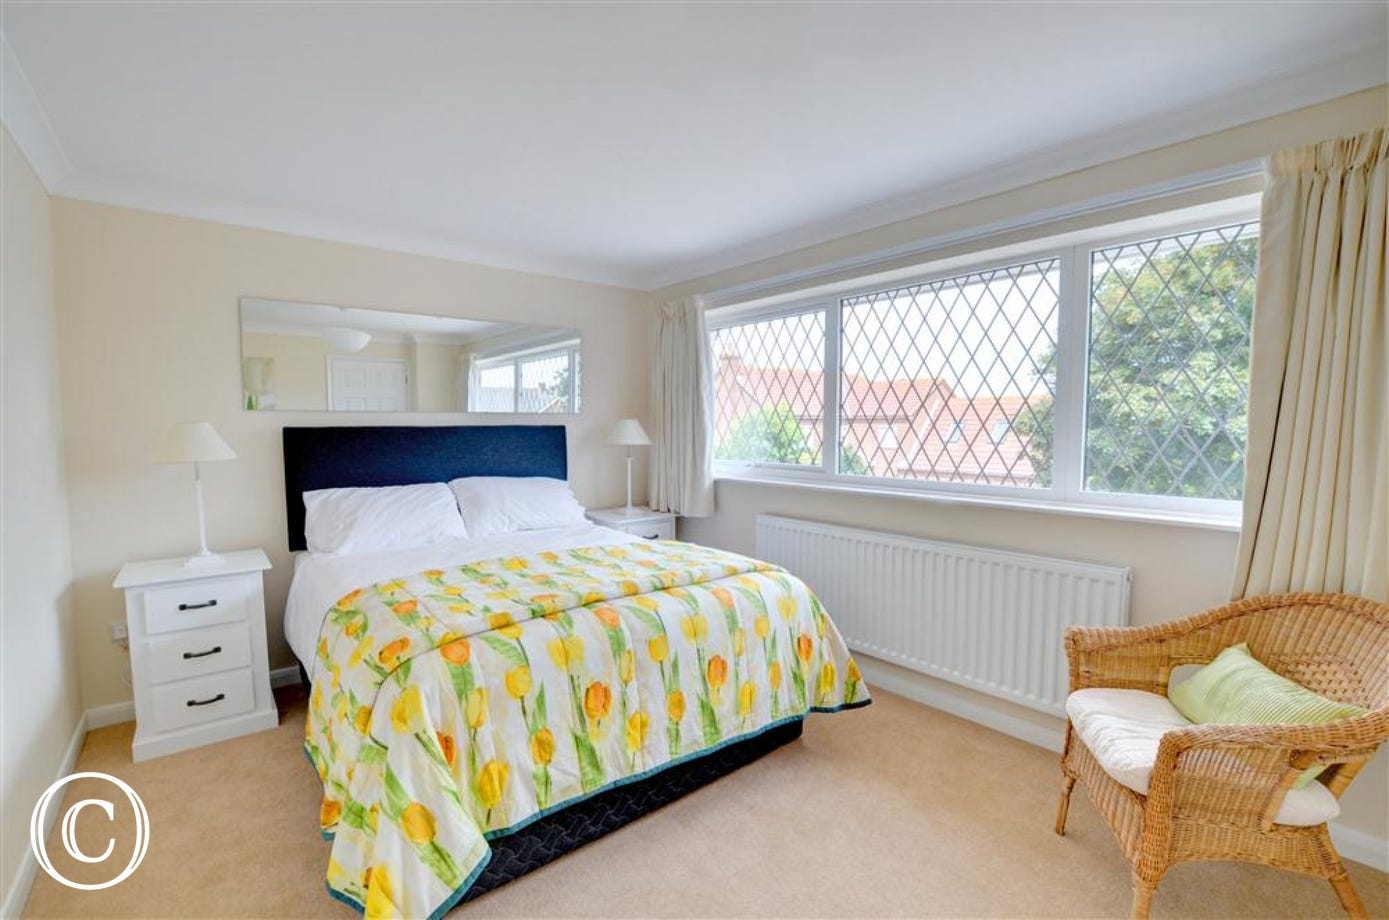 The Master bedroom is on the front of the property, again beautifully presented with white bed linen and cheery yellow floral bed cover.